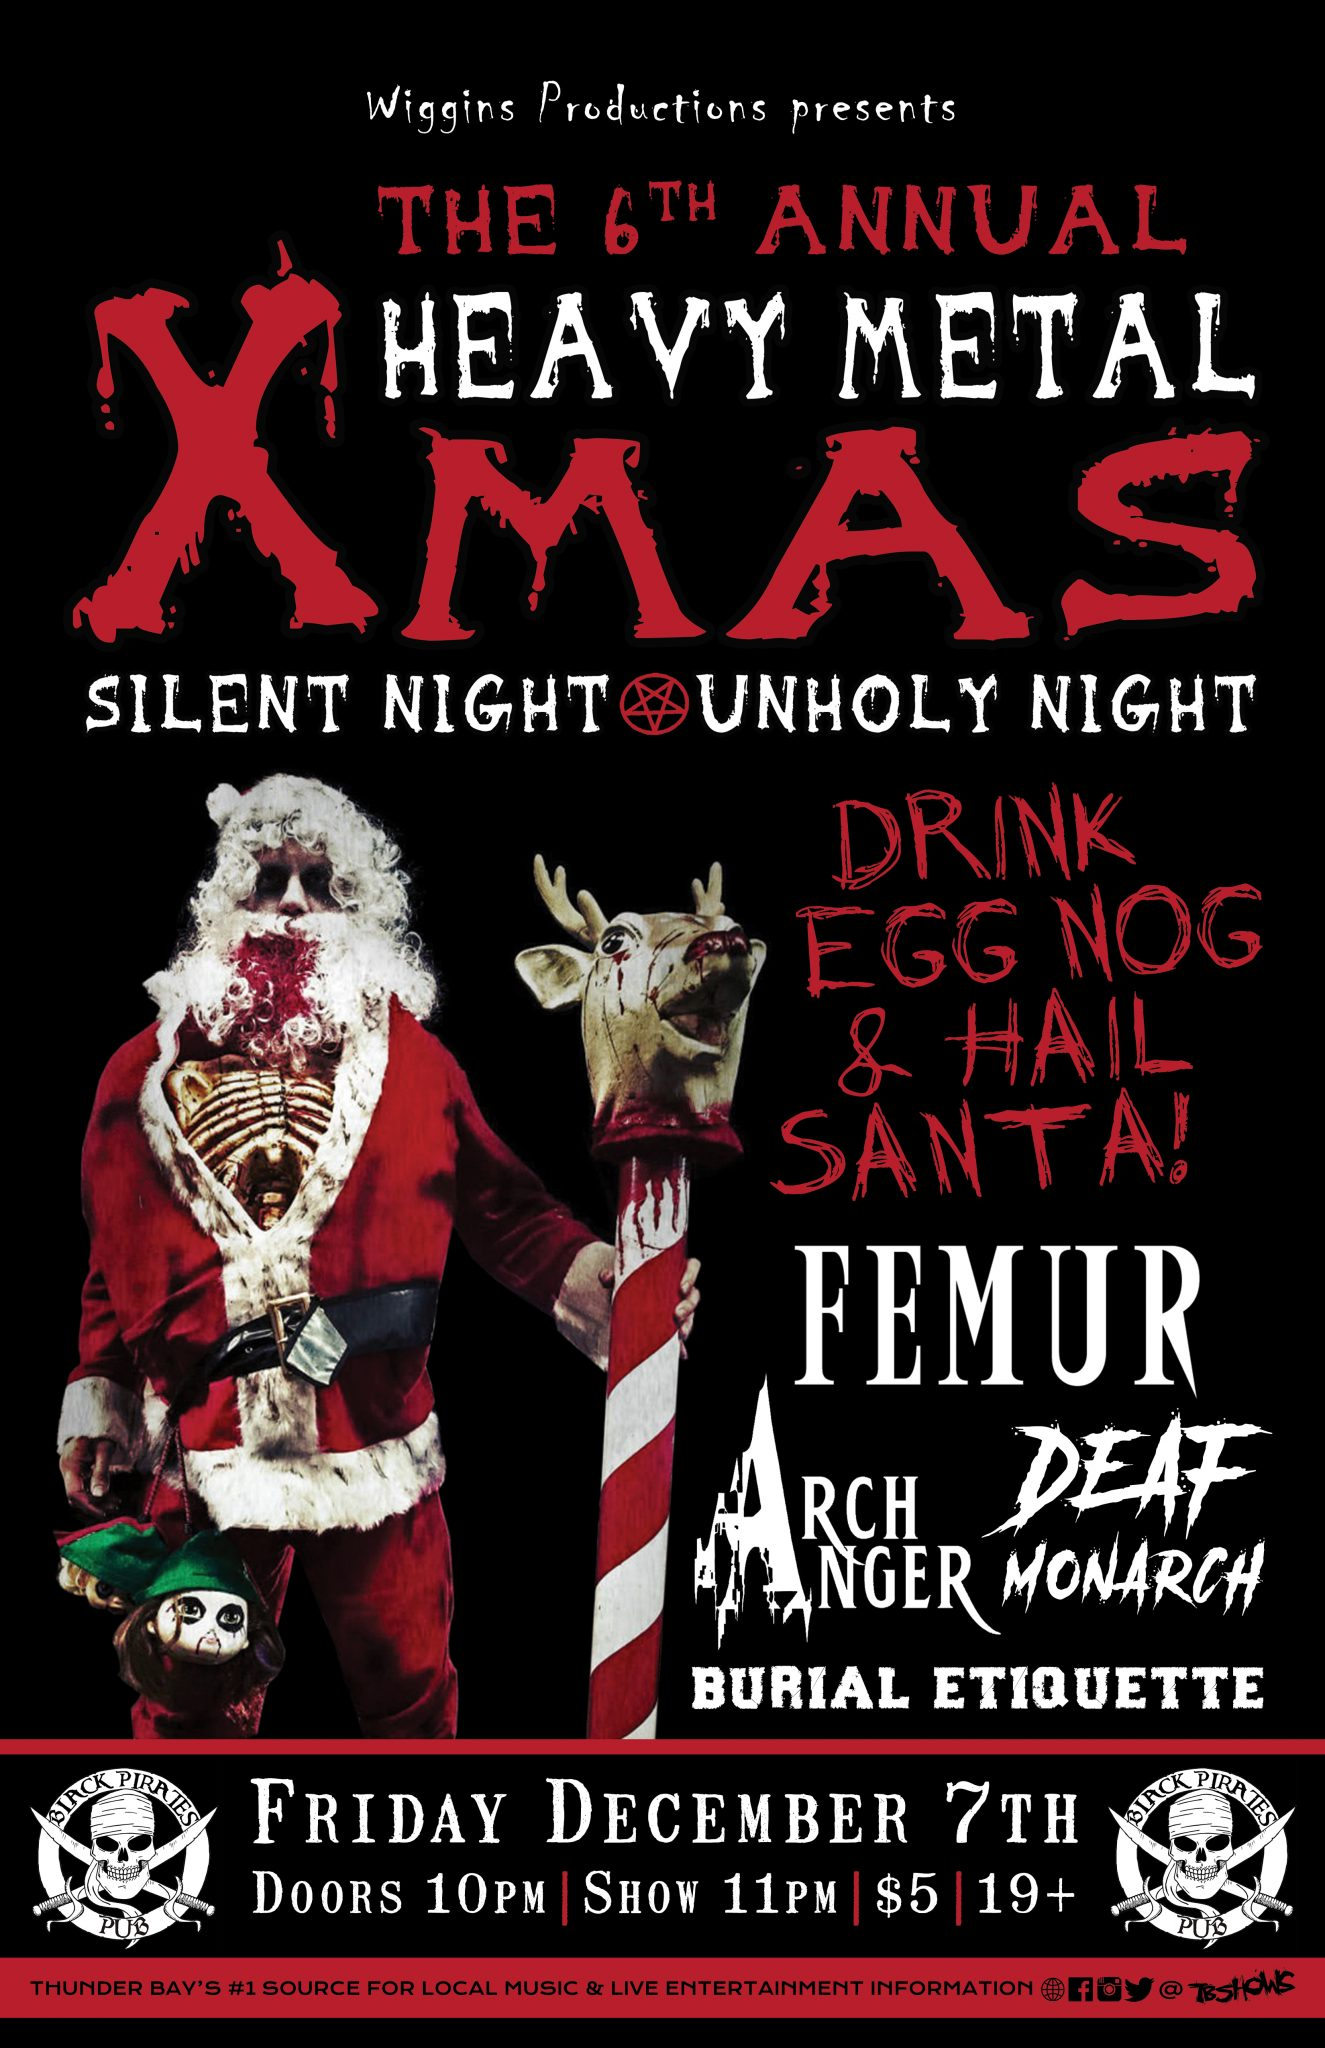 On Heavy Metal The 6th Annual Heavy Metal Xmas